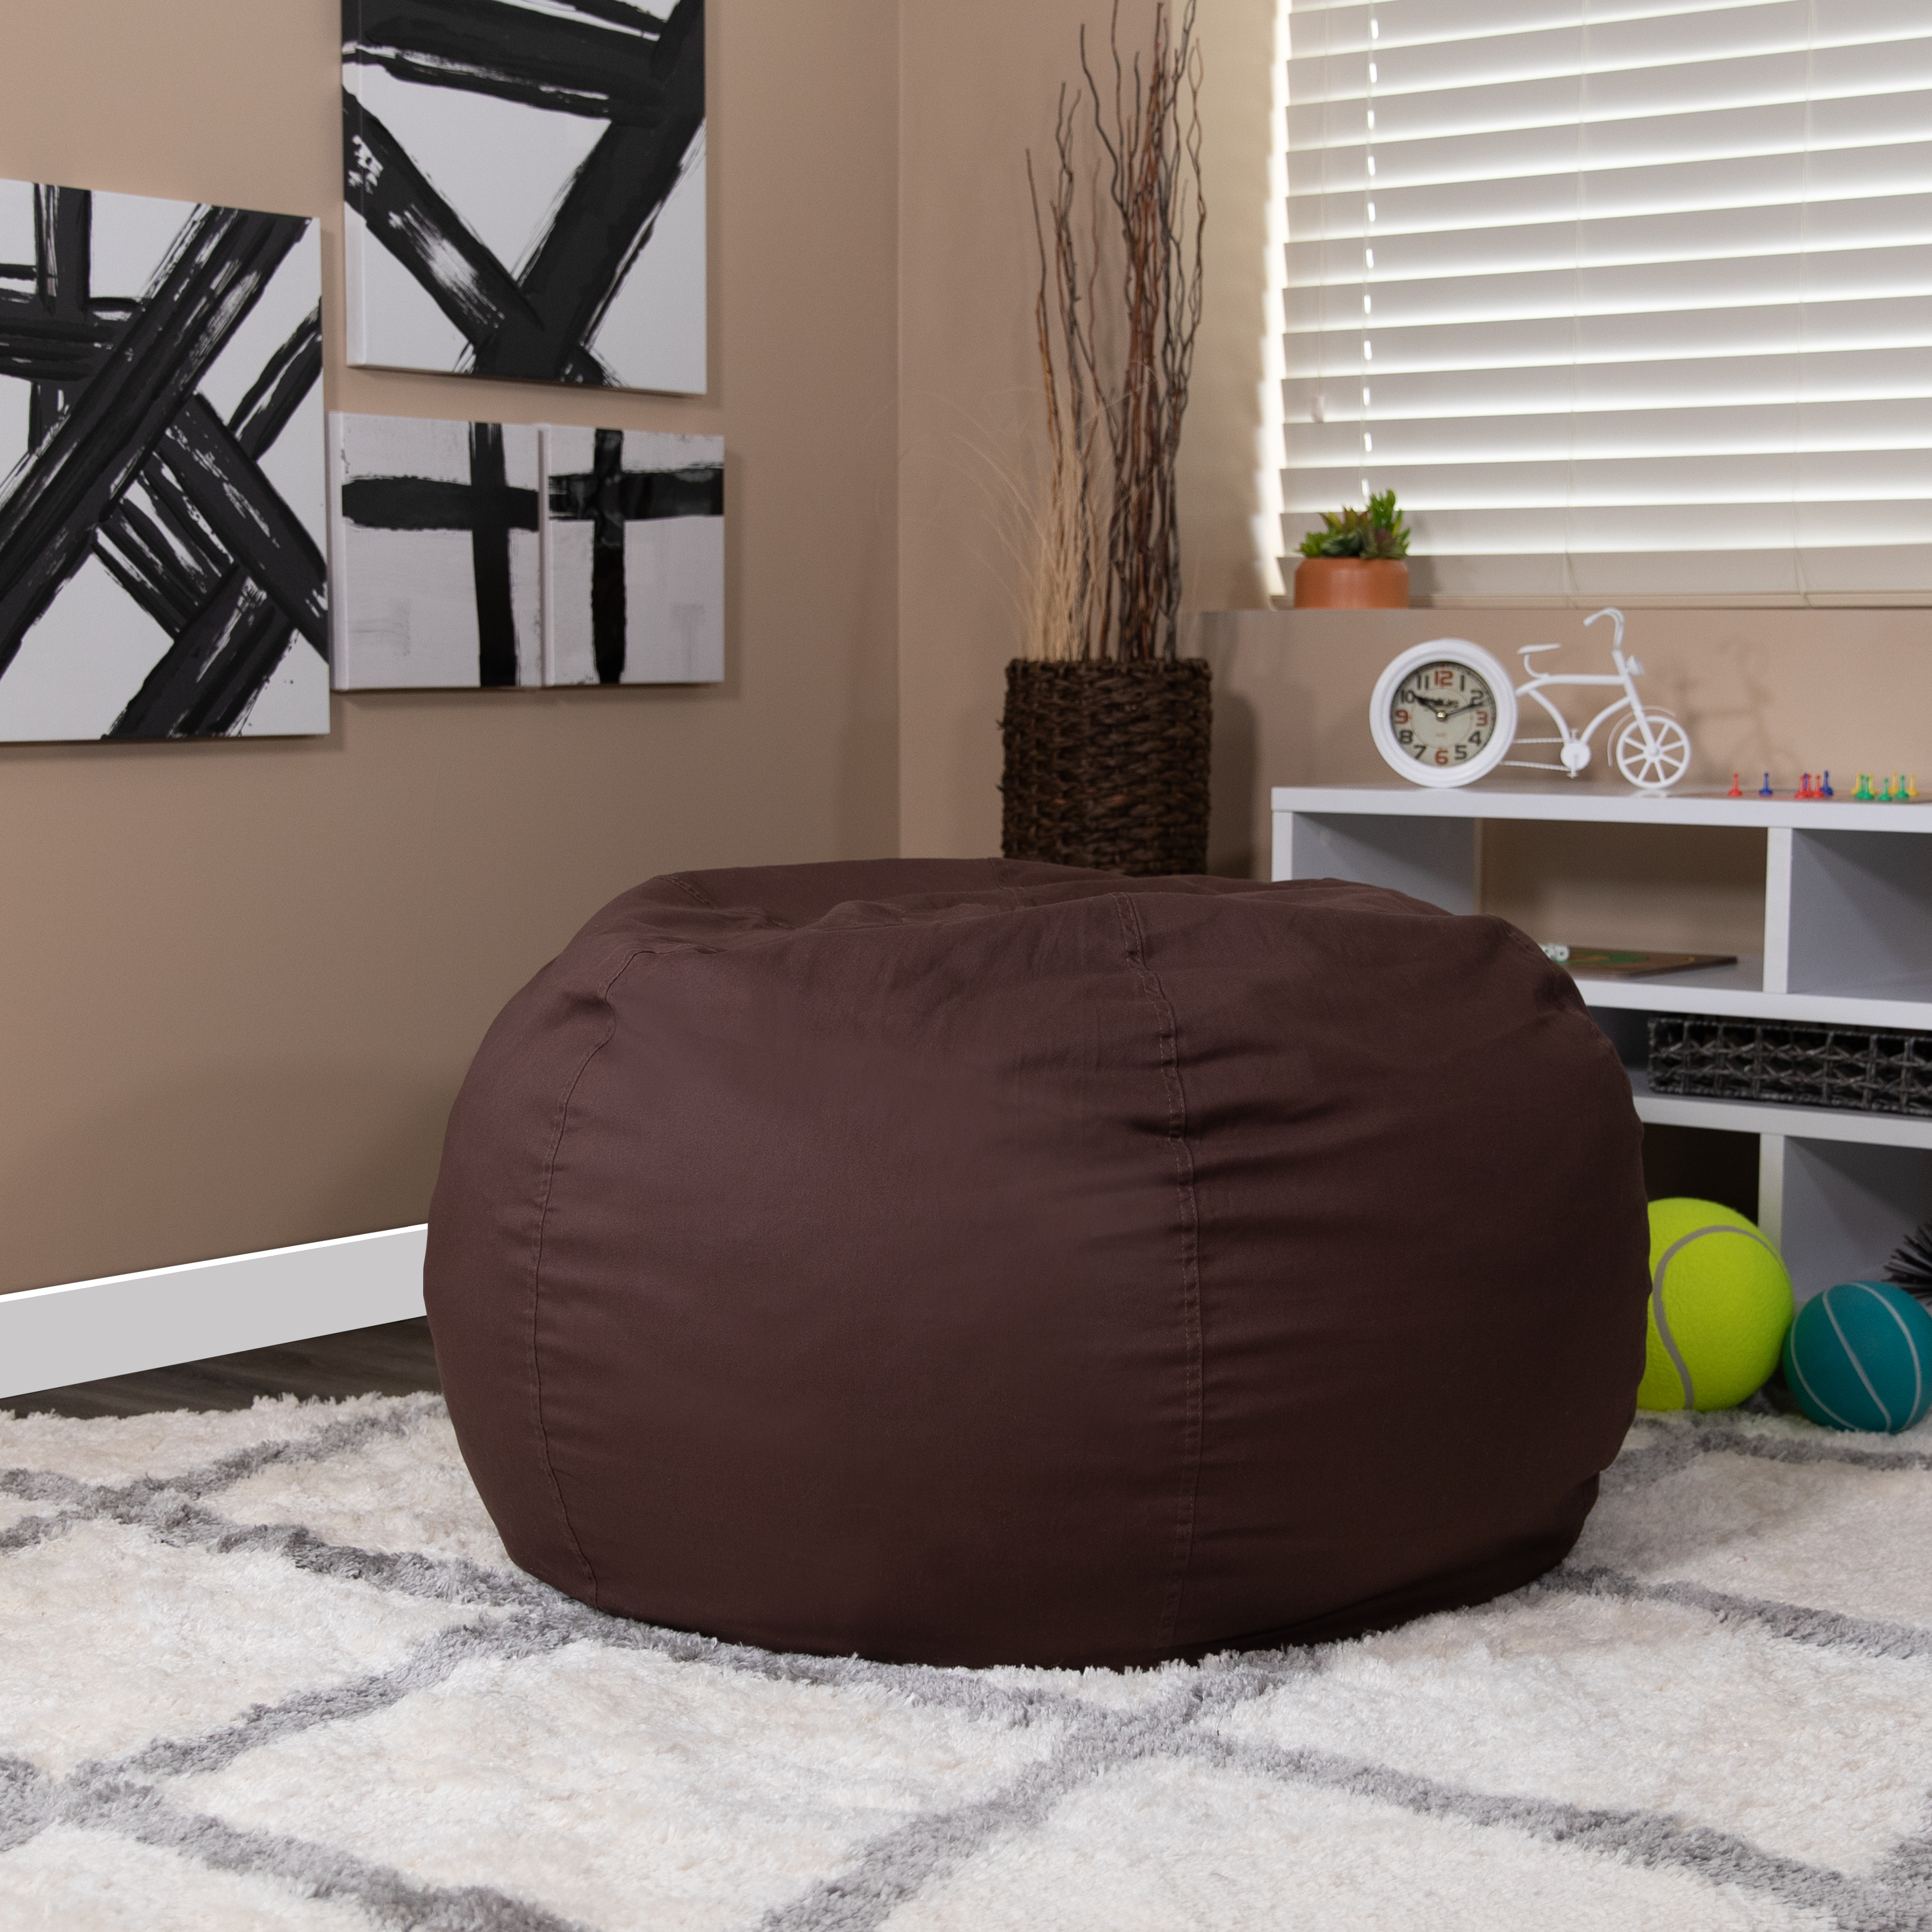 Awe Inspiring Oversized Bean Bag Chair For Kids And Adults Gmtry Best Dining Table And Chair Ideas Images Gmtryco